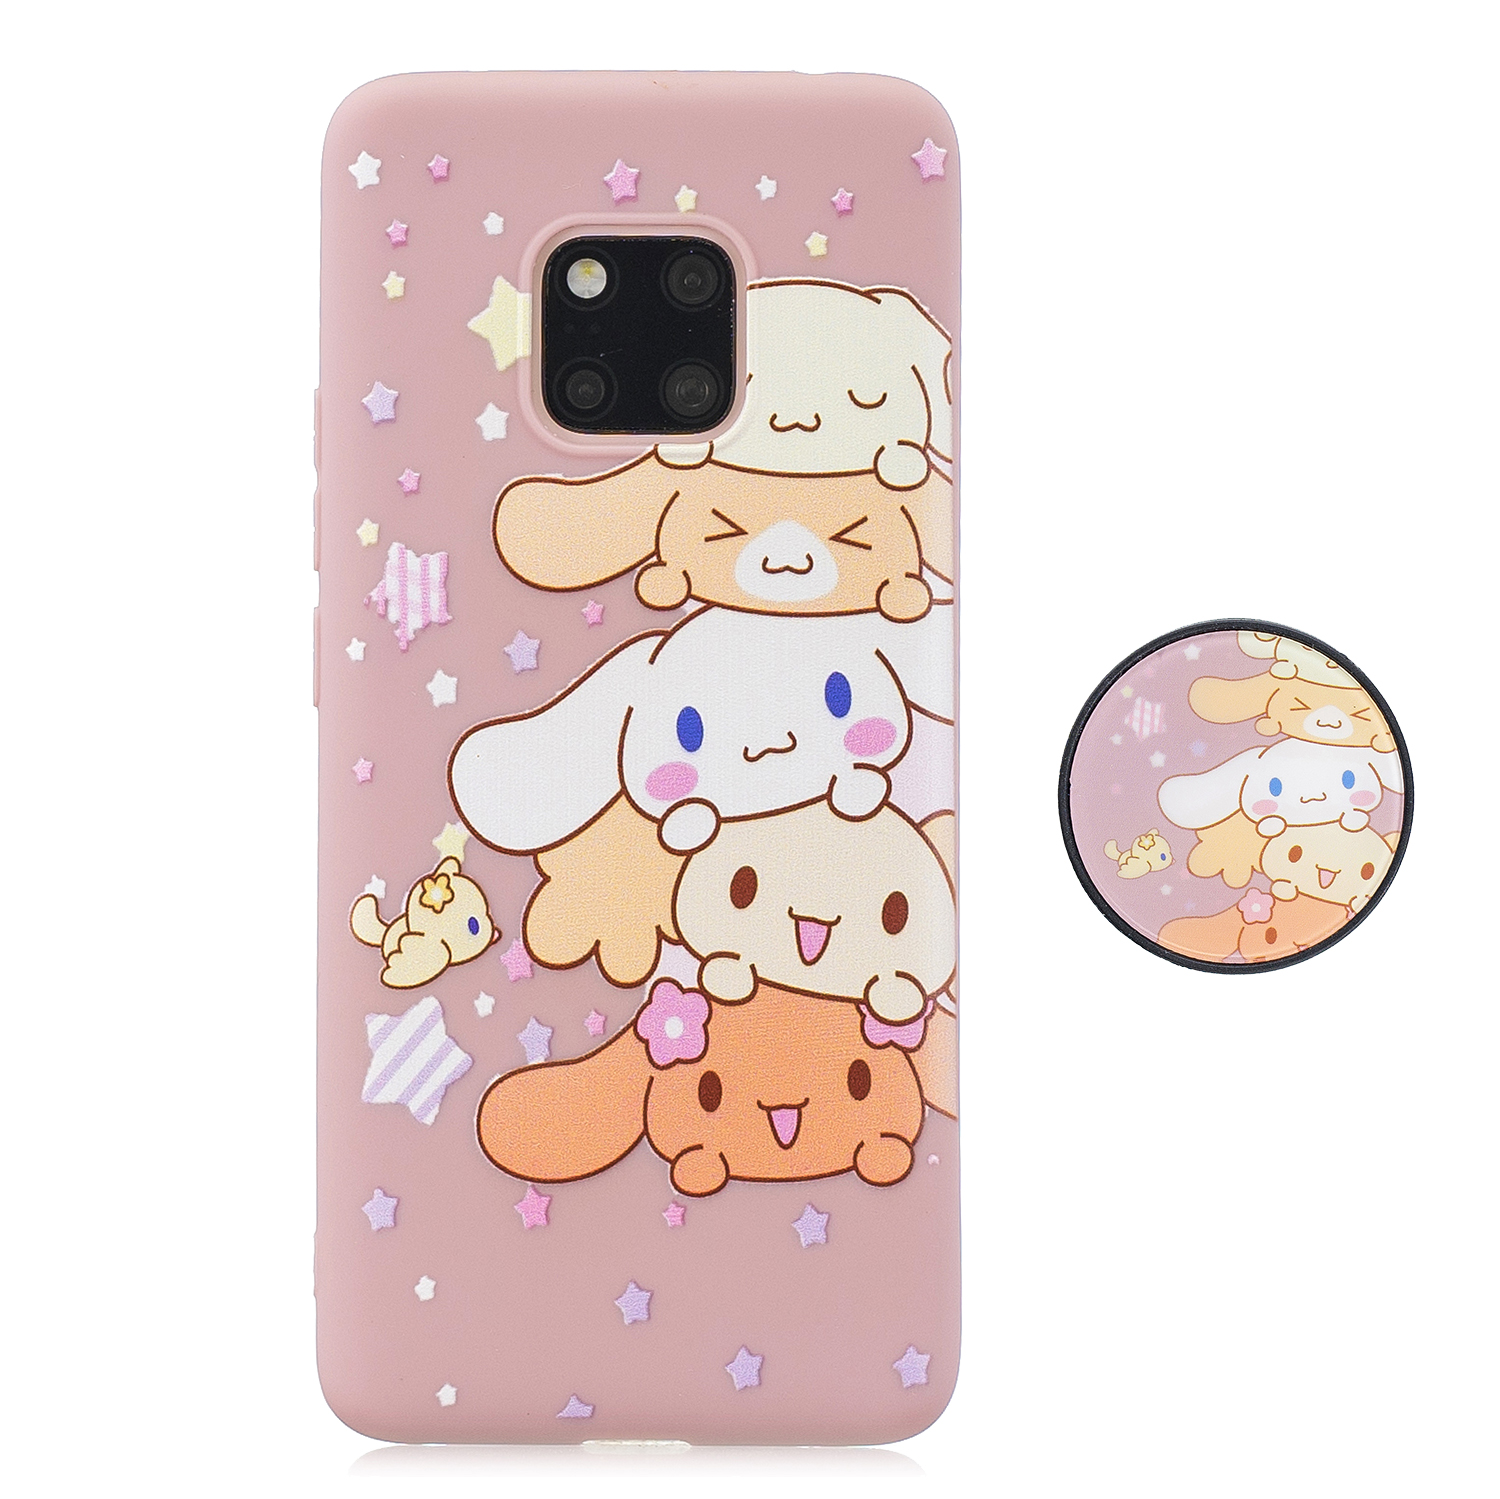 For HUAWEI MATE 20 pro Pure Color Phone Cover Cute Cartoon Phone Case Lightweight Soft TPU Phone Case with Matching Pattern Adjustable Bracket 1